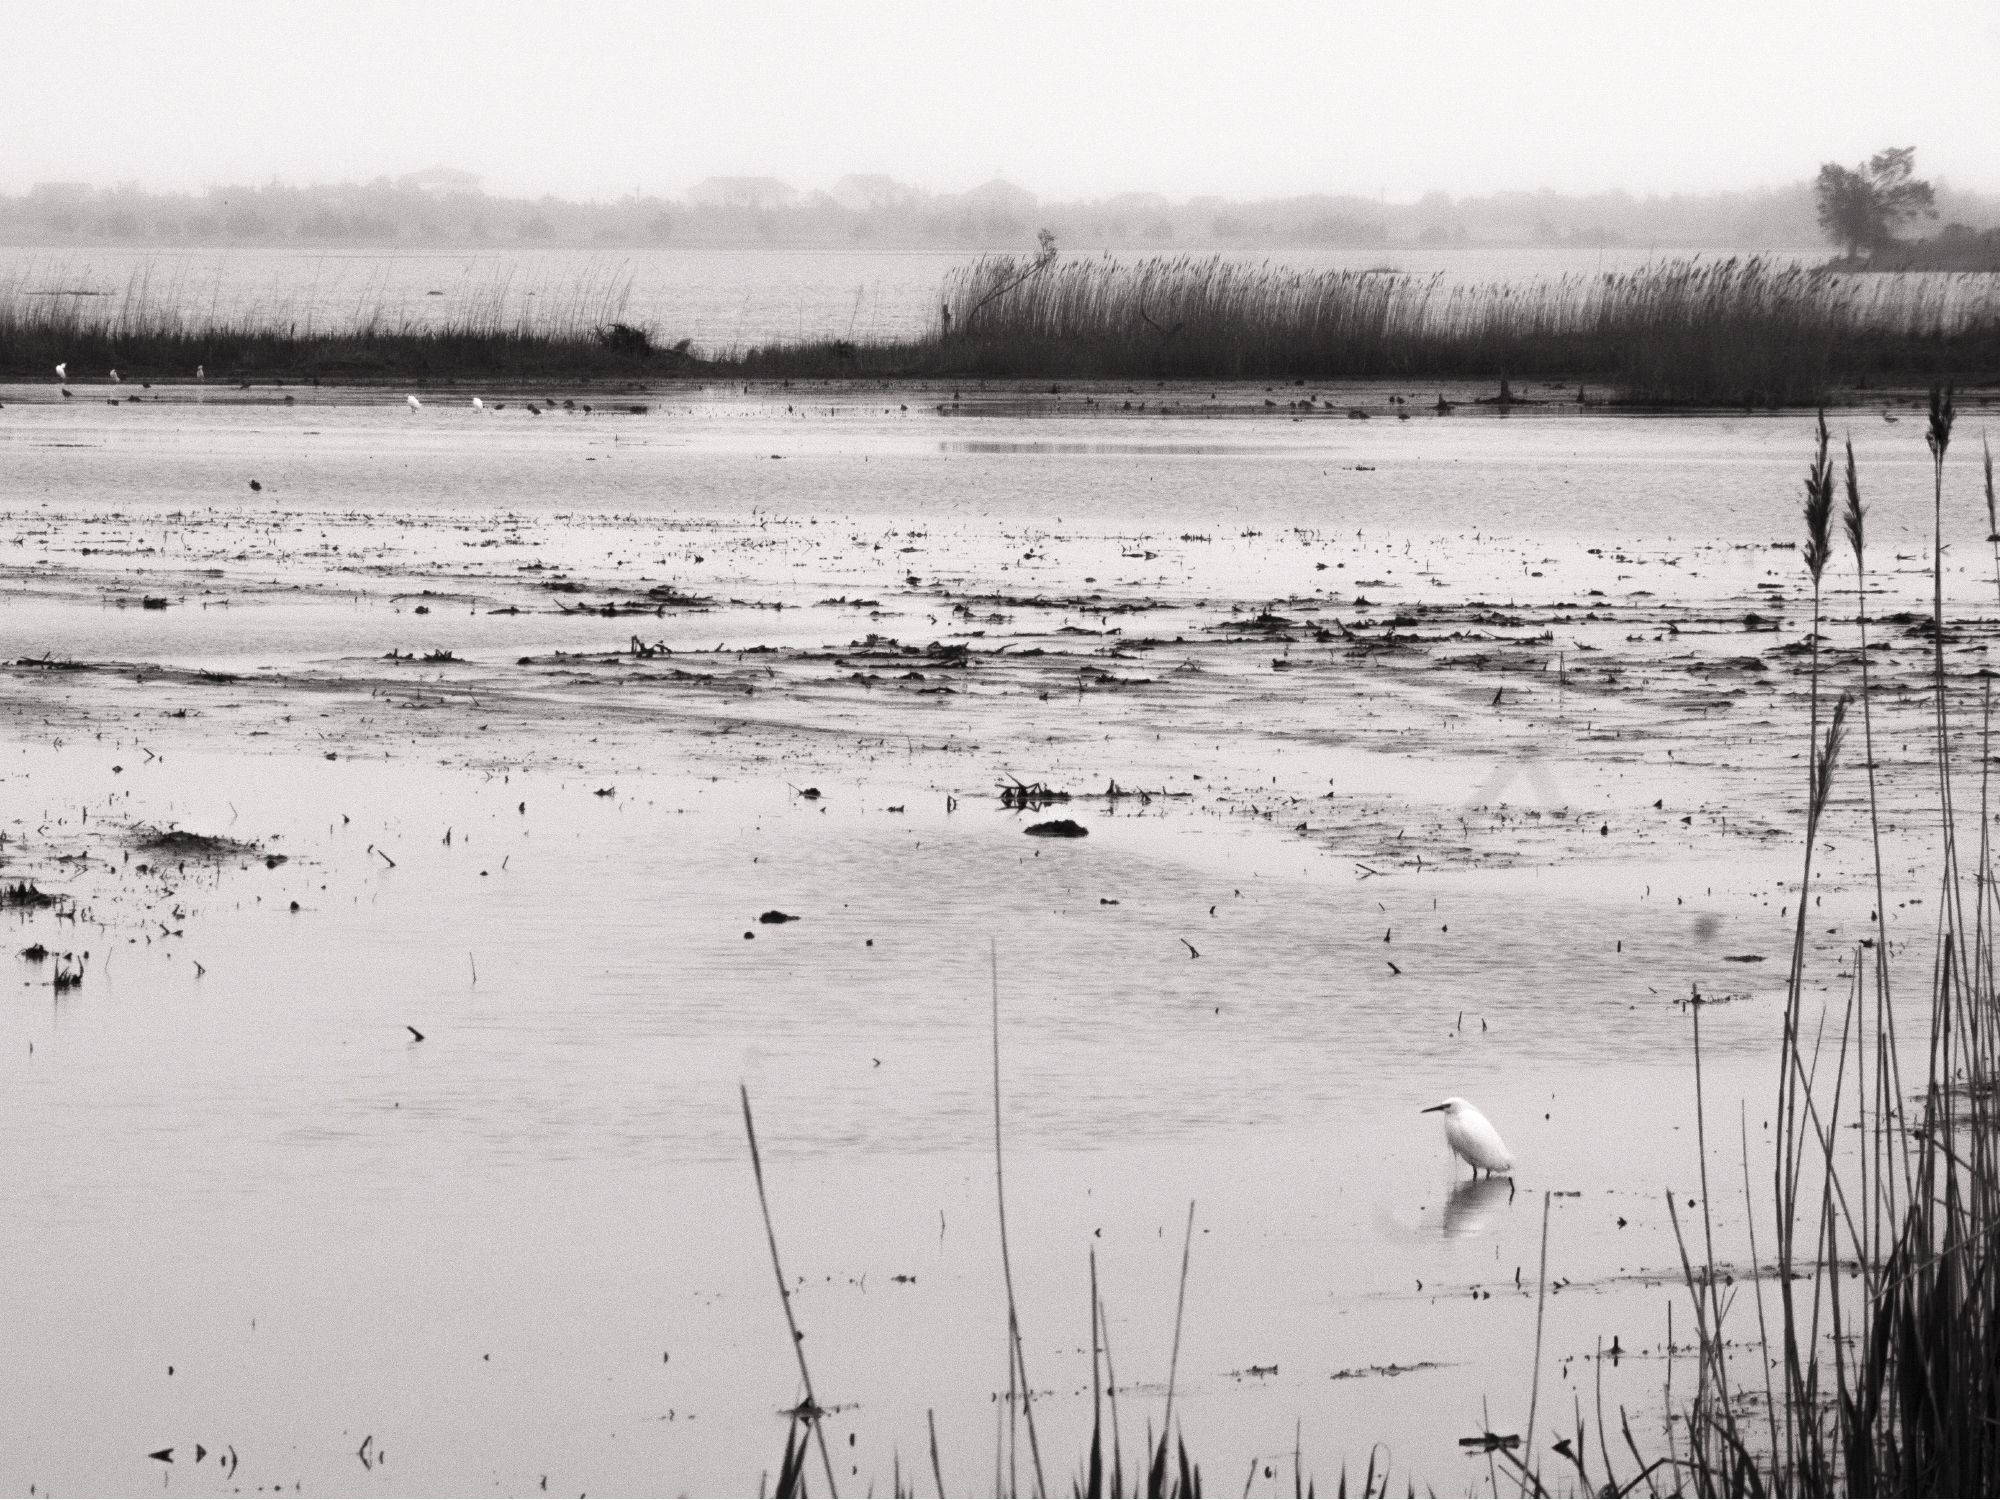 Black and white photograph of a small bird walking across marshland alone, feeling very melancholy and lonely.